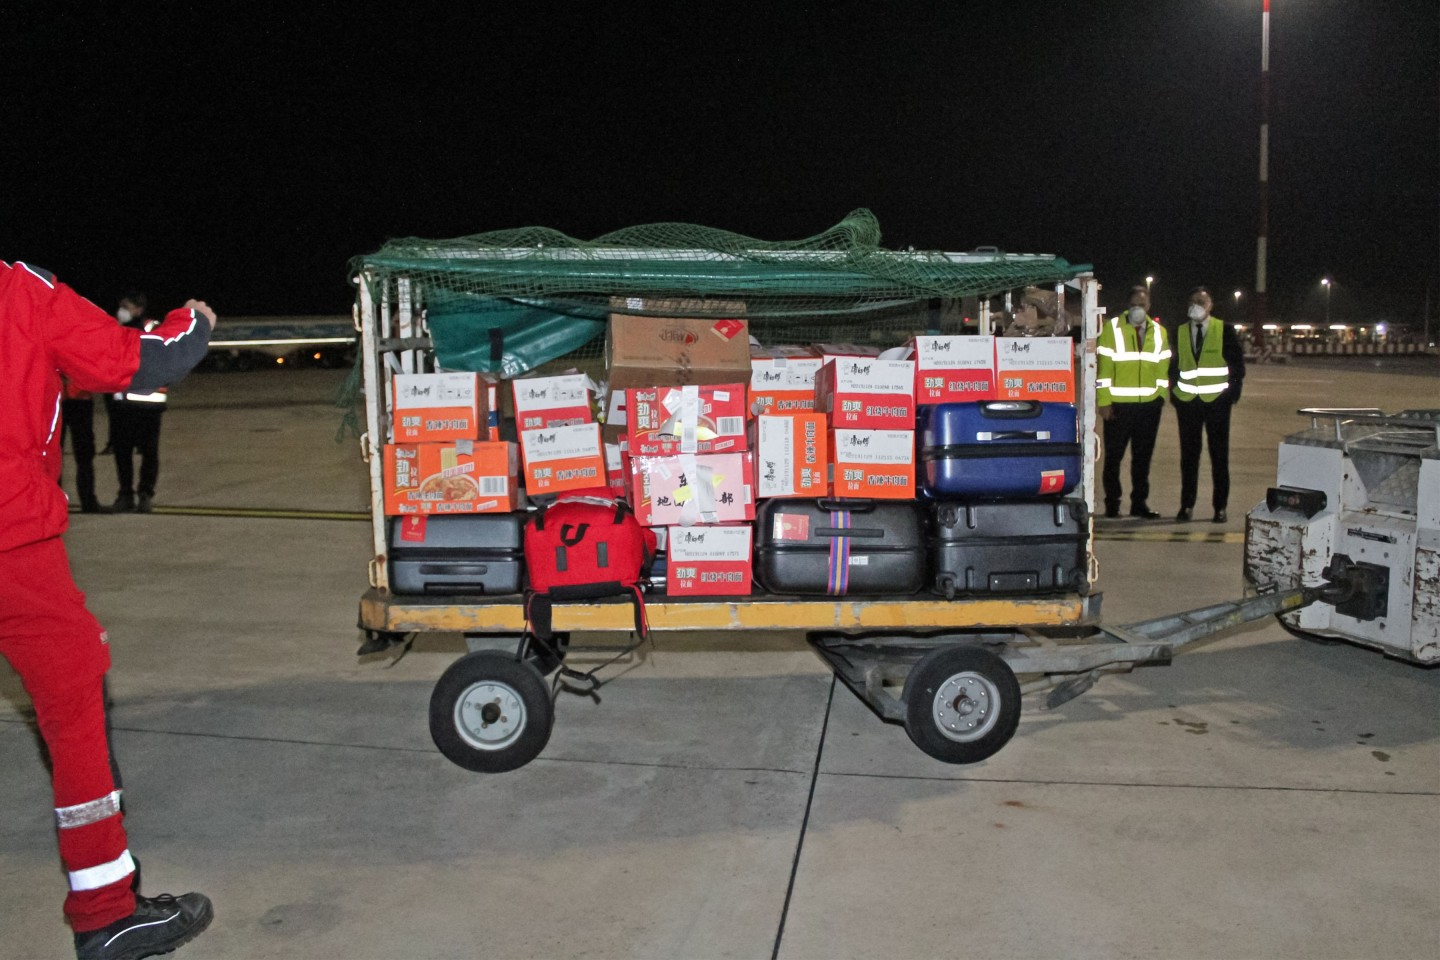 This photo provided by Italian news agency Ansa on 13 March 2020 shows supplies being unloaded after a China Eastern flight bringing medical supply from China landed on 13 March at Rome's Fiumicino international airport from Shanghai, to help fight the new coronavirus in Italy. (STRINGER/ANSA/AFP)